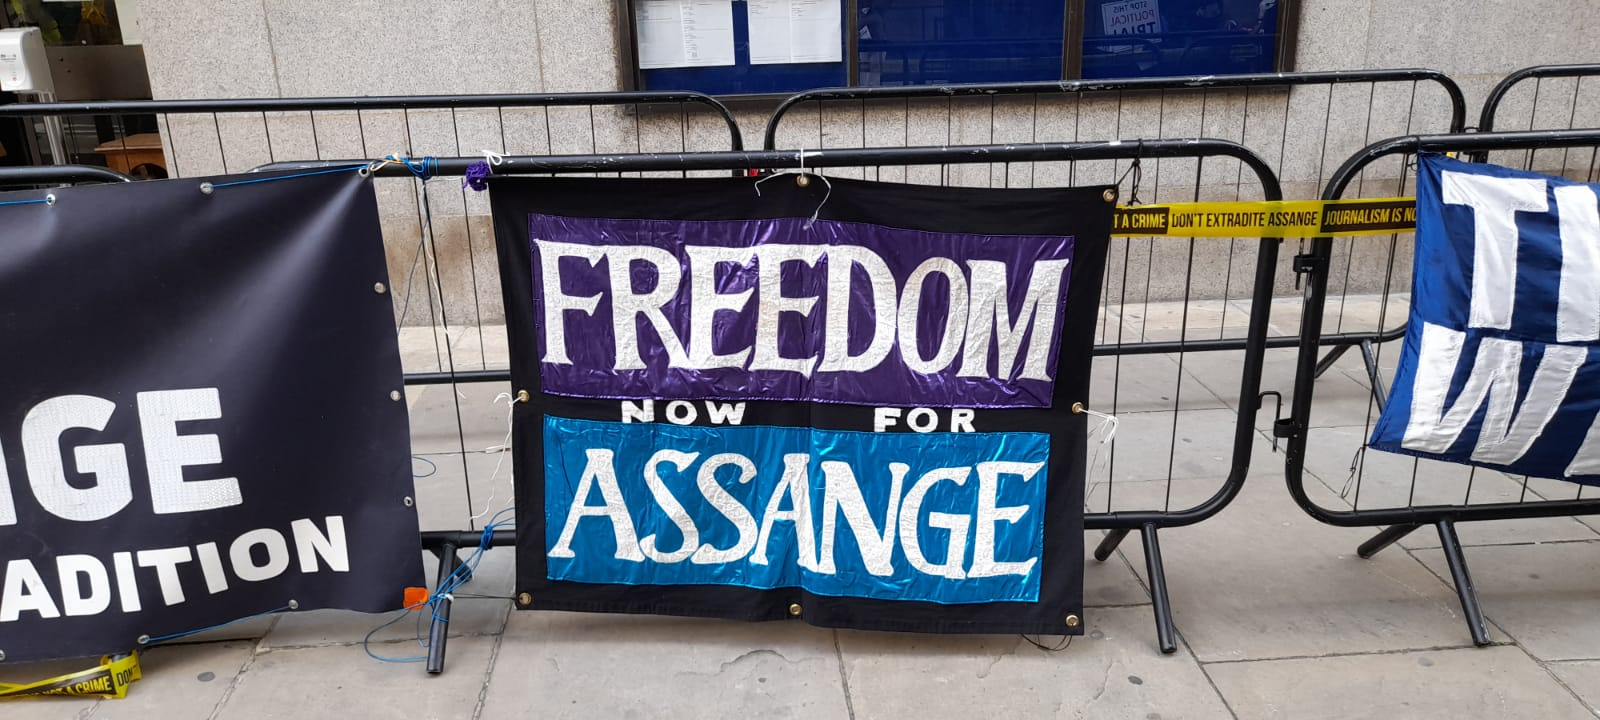 freedom-now-banner-old-bailey-sept20.jpg